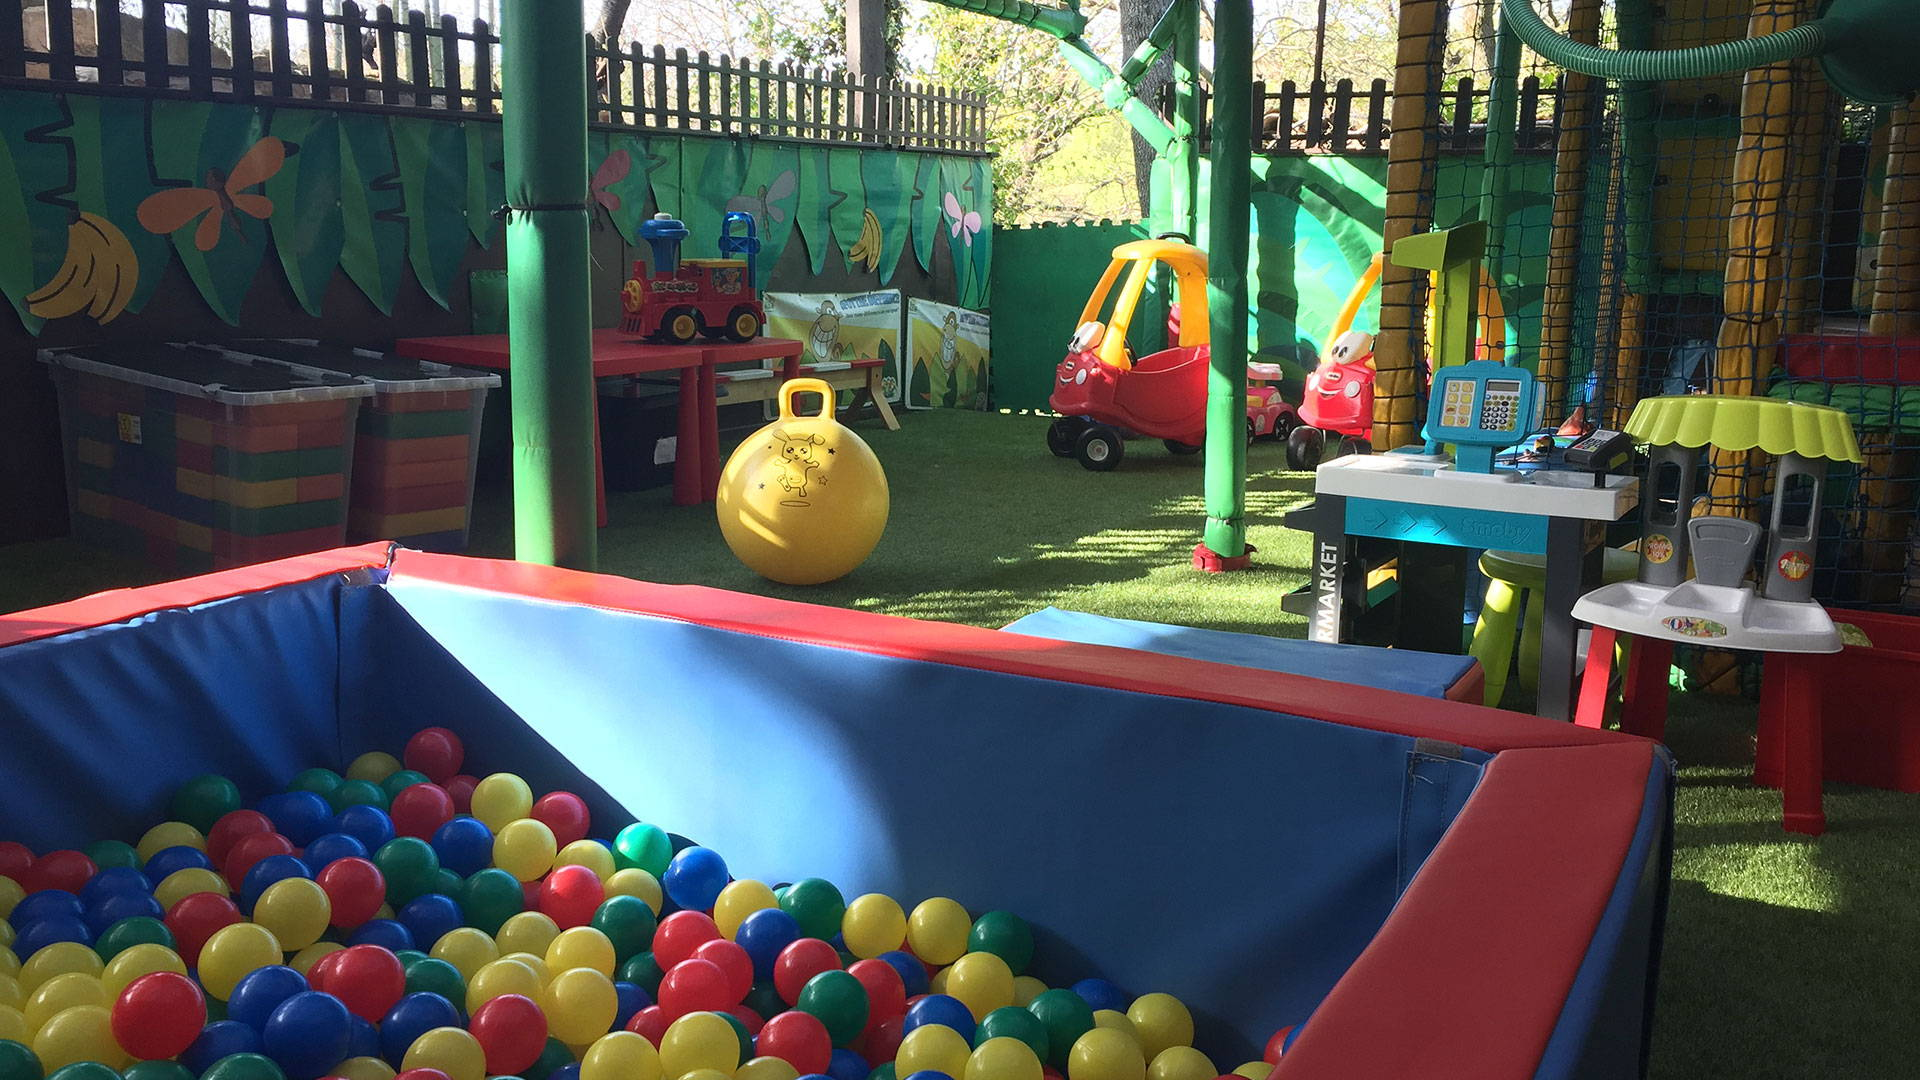 Soft play area for baby boltholes France